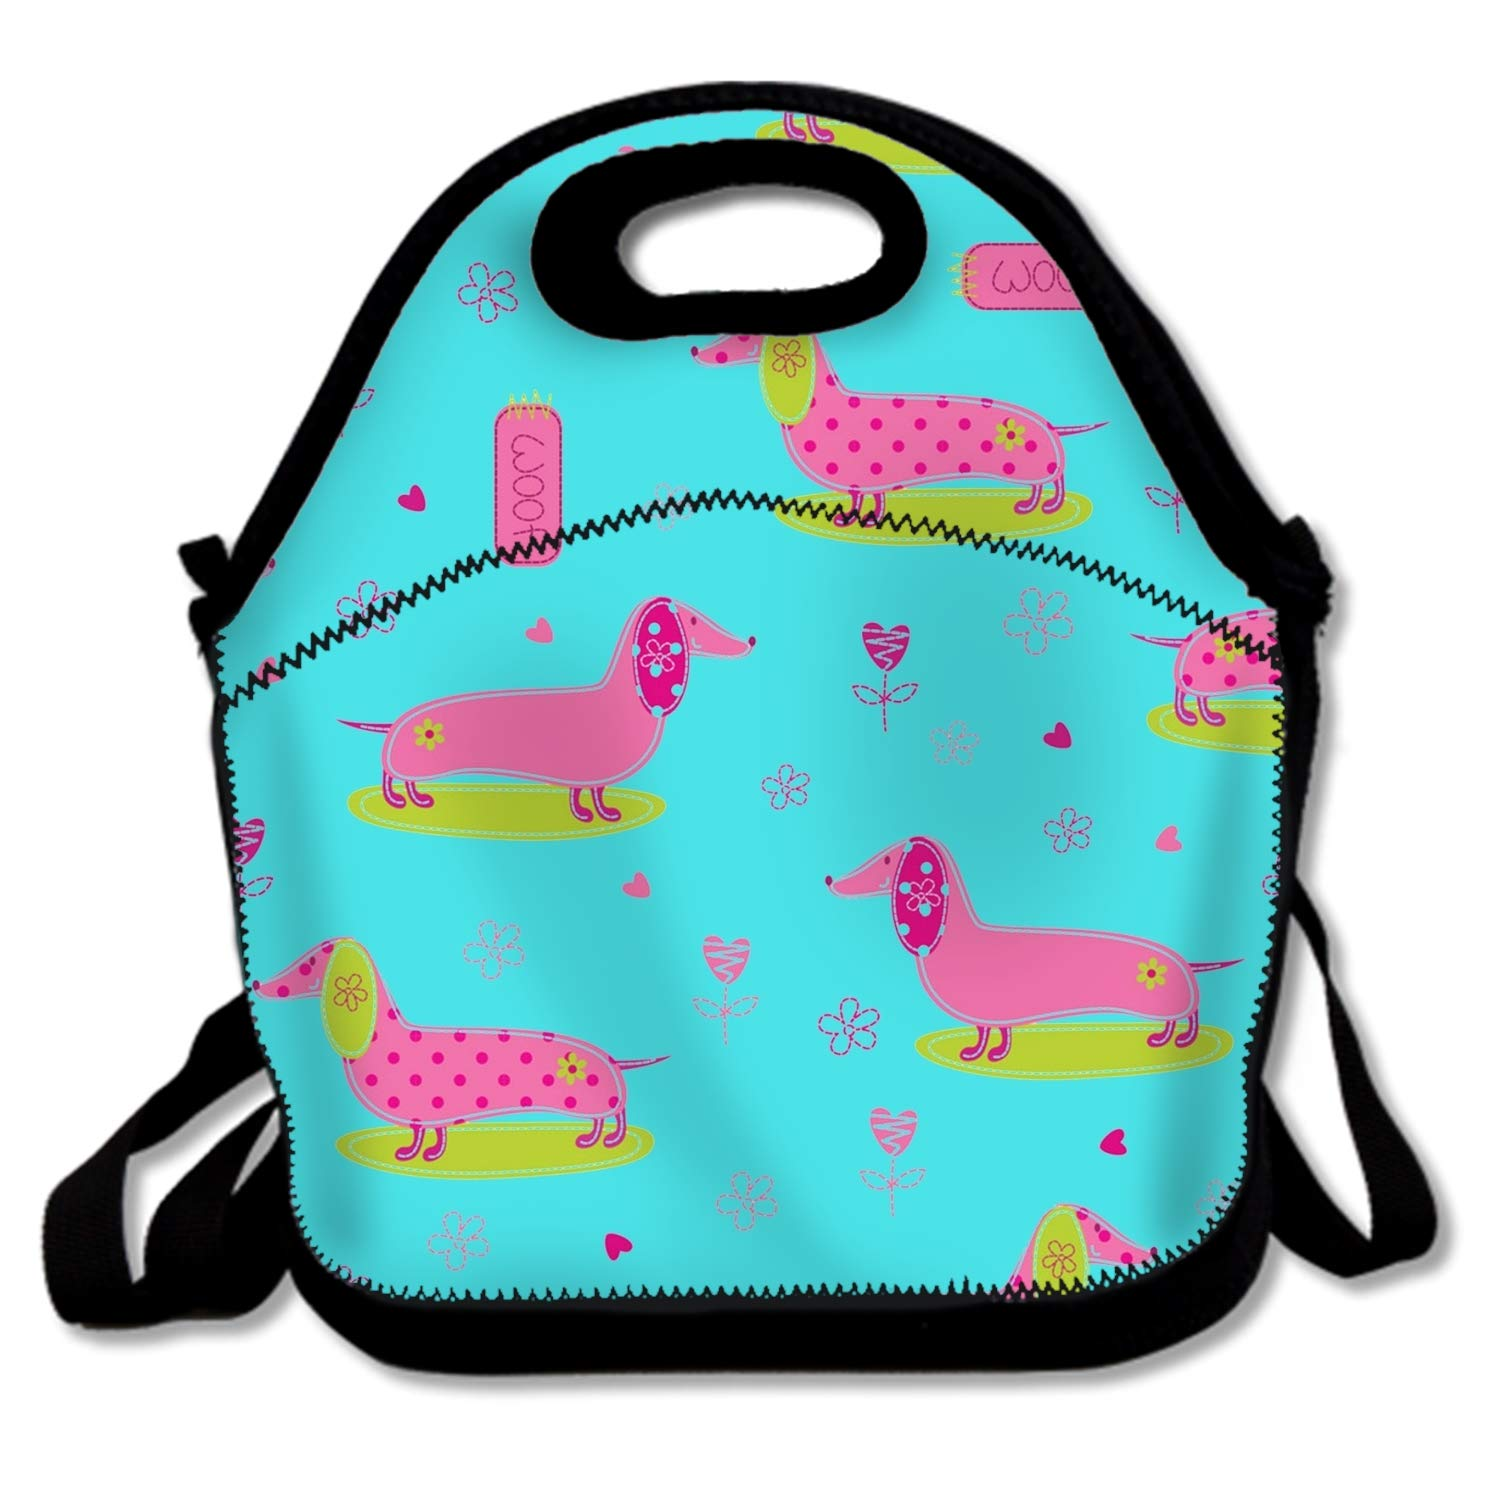 Cute Pink Dogs Cooler Lunch Bag Outdoor Picnic Bag